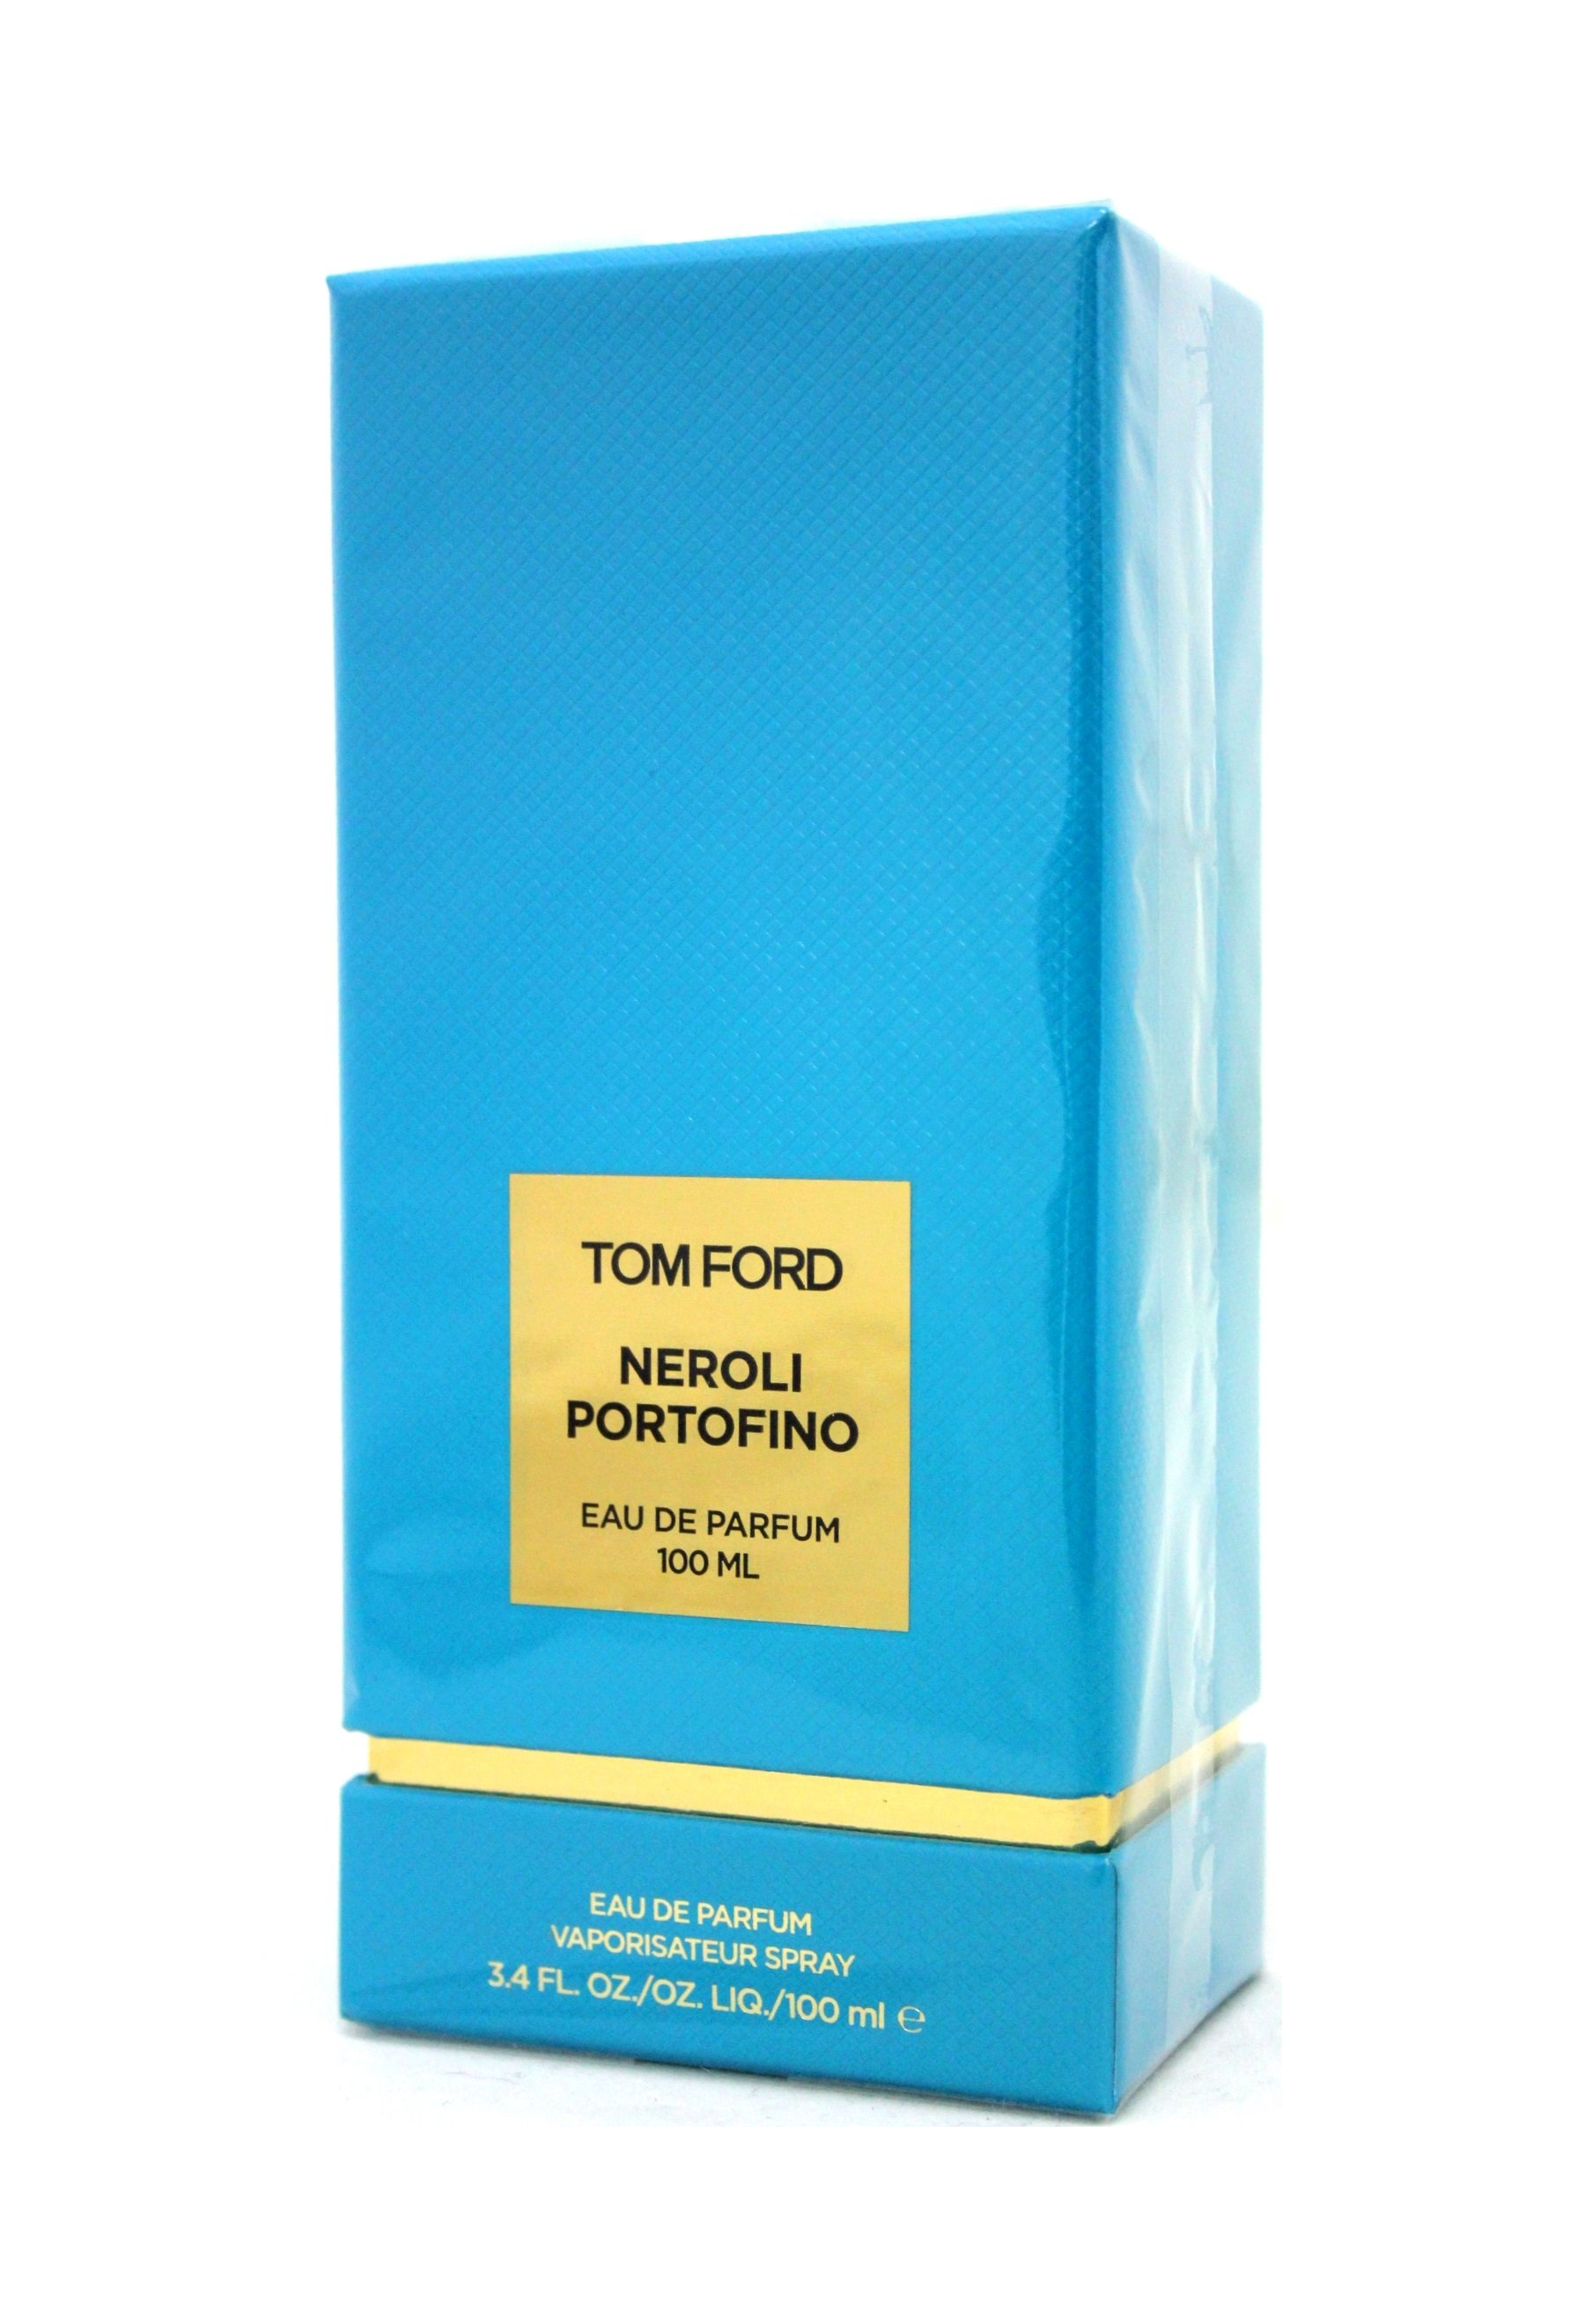 tom ford neroli portofino eau de parfum edp f r m nner und. Black Bedroom Furniture Sets. Home Design Ideas